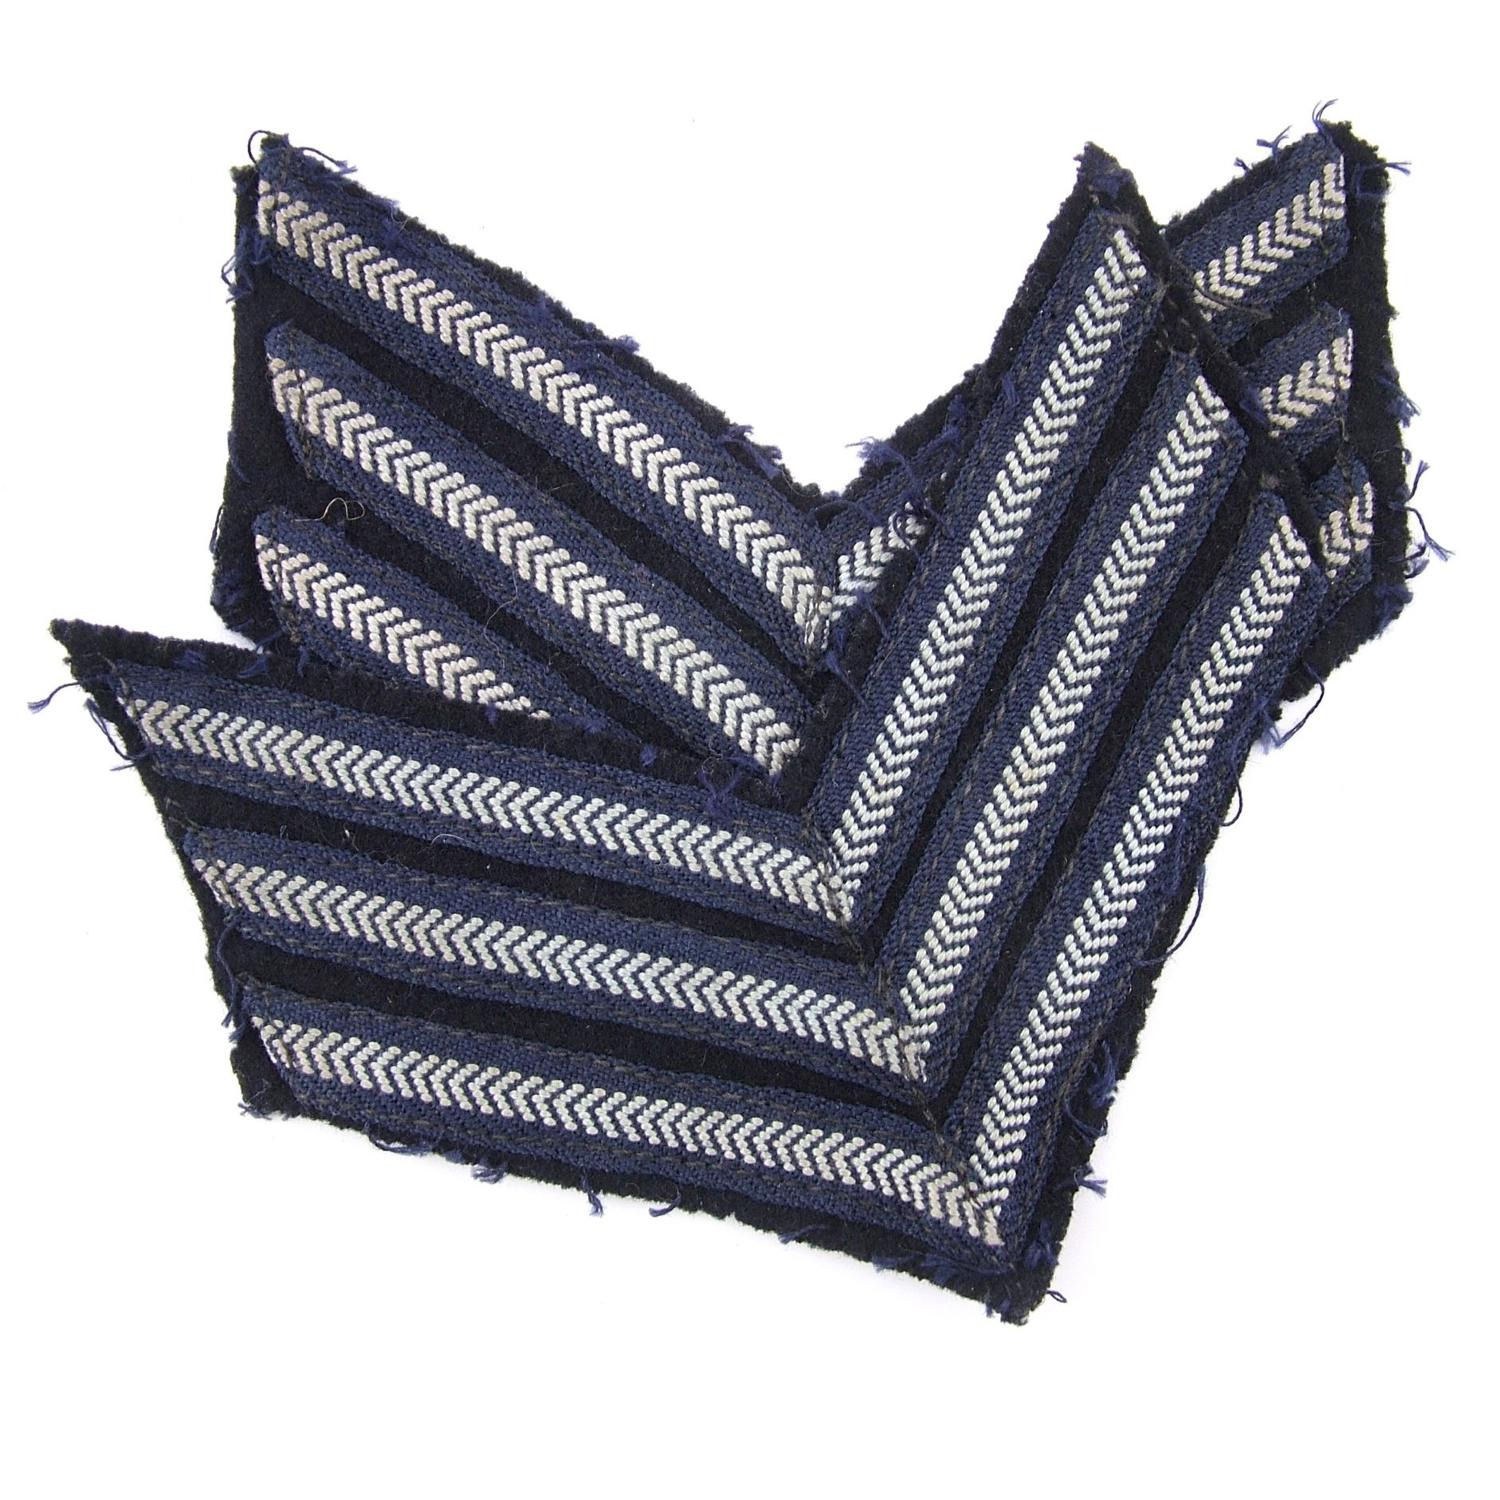 RAF sergeant stripes, pair